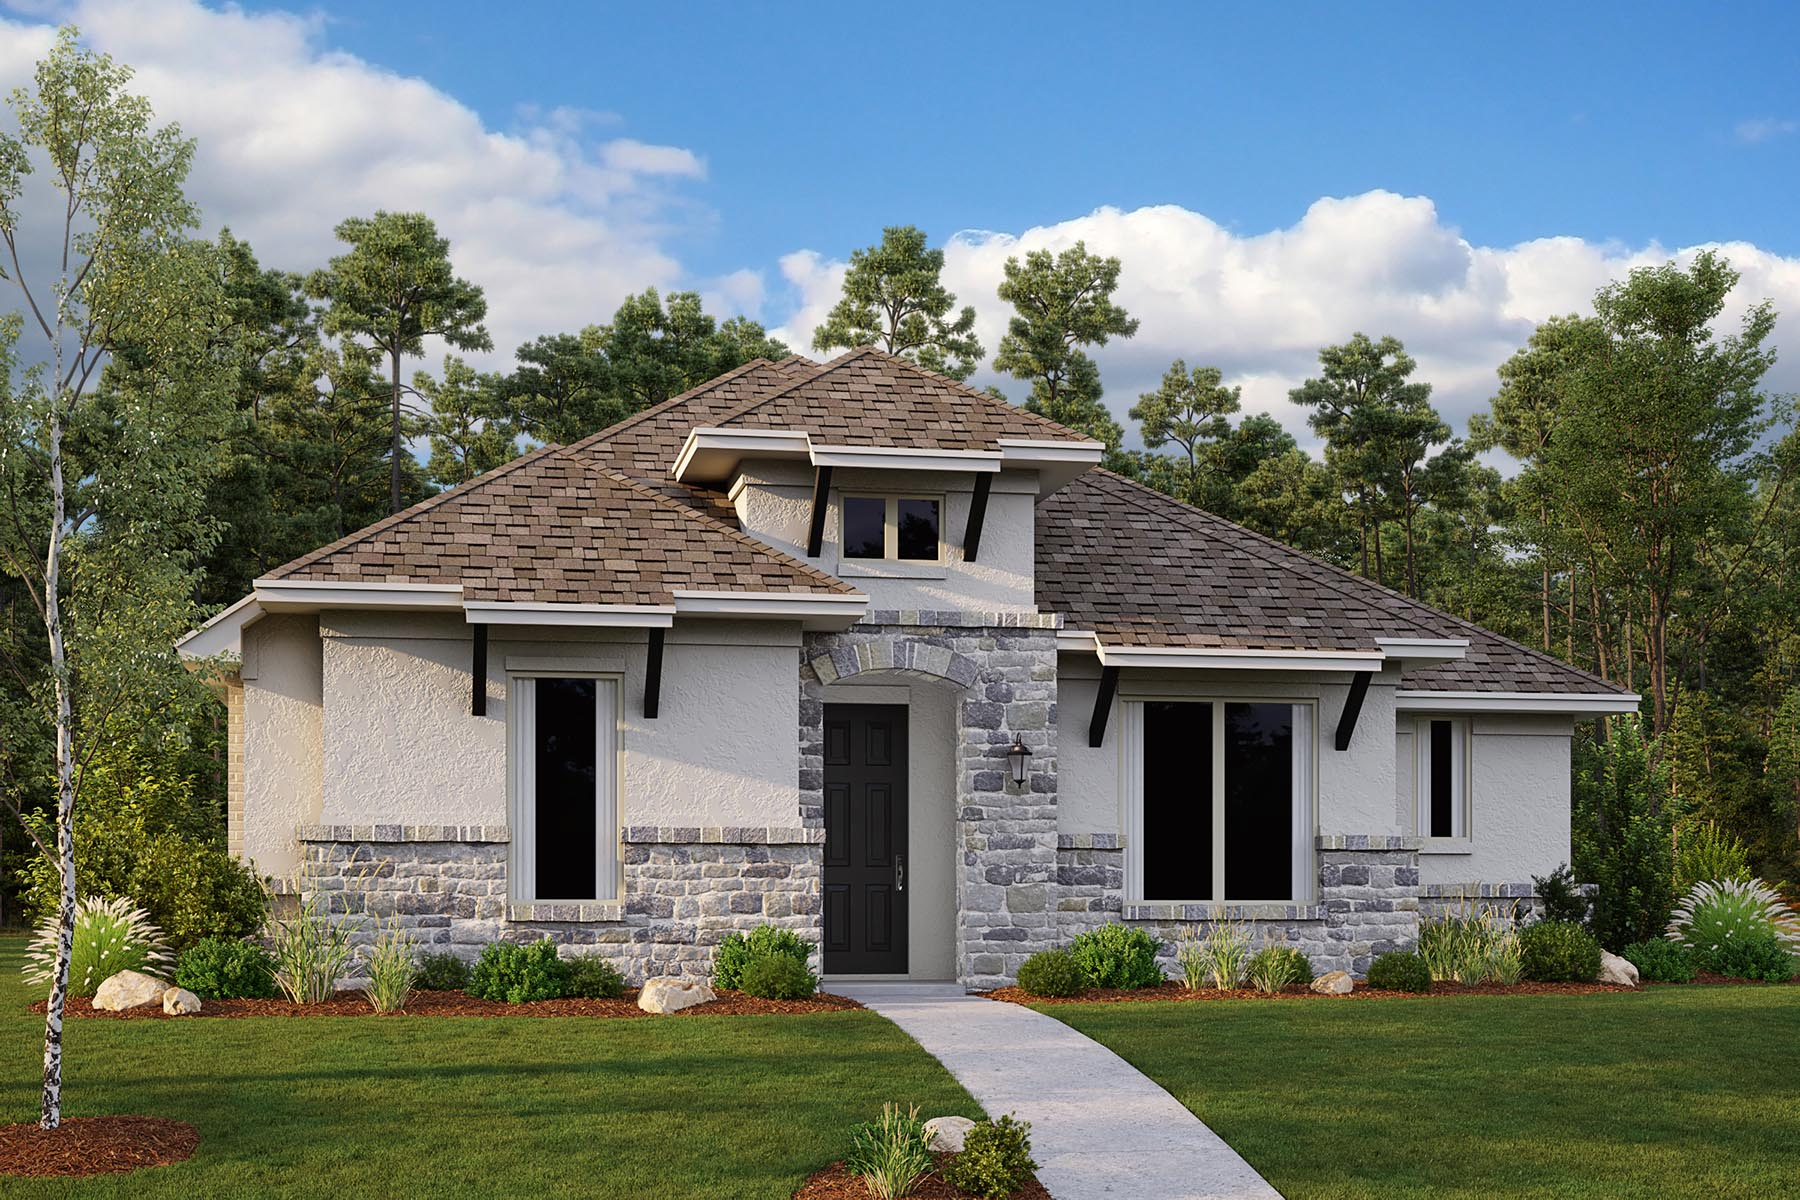 Winslow II Plan DAL_Winslow_ElevationC_1800x1200 at Villages of Creekwood in Frisco Texas by Mattamy Homes